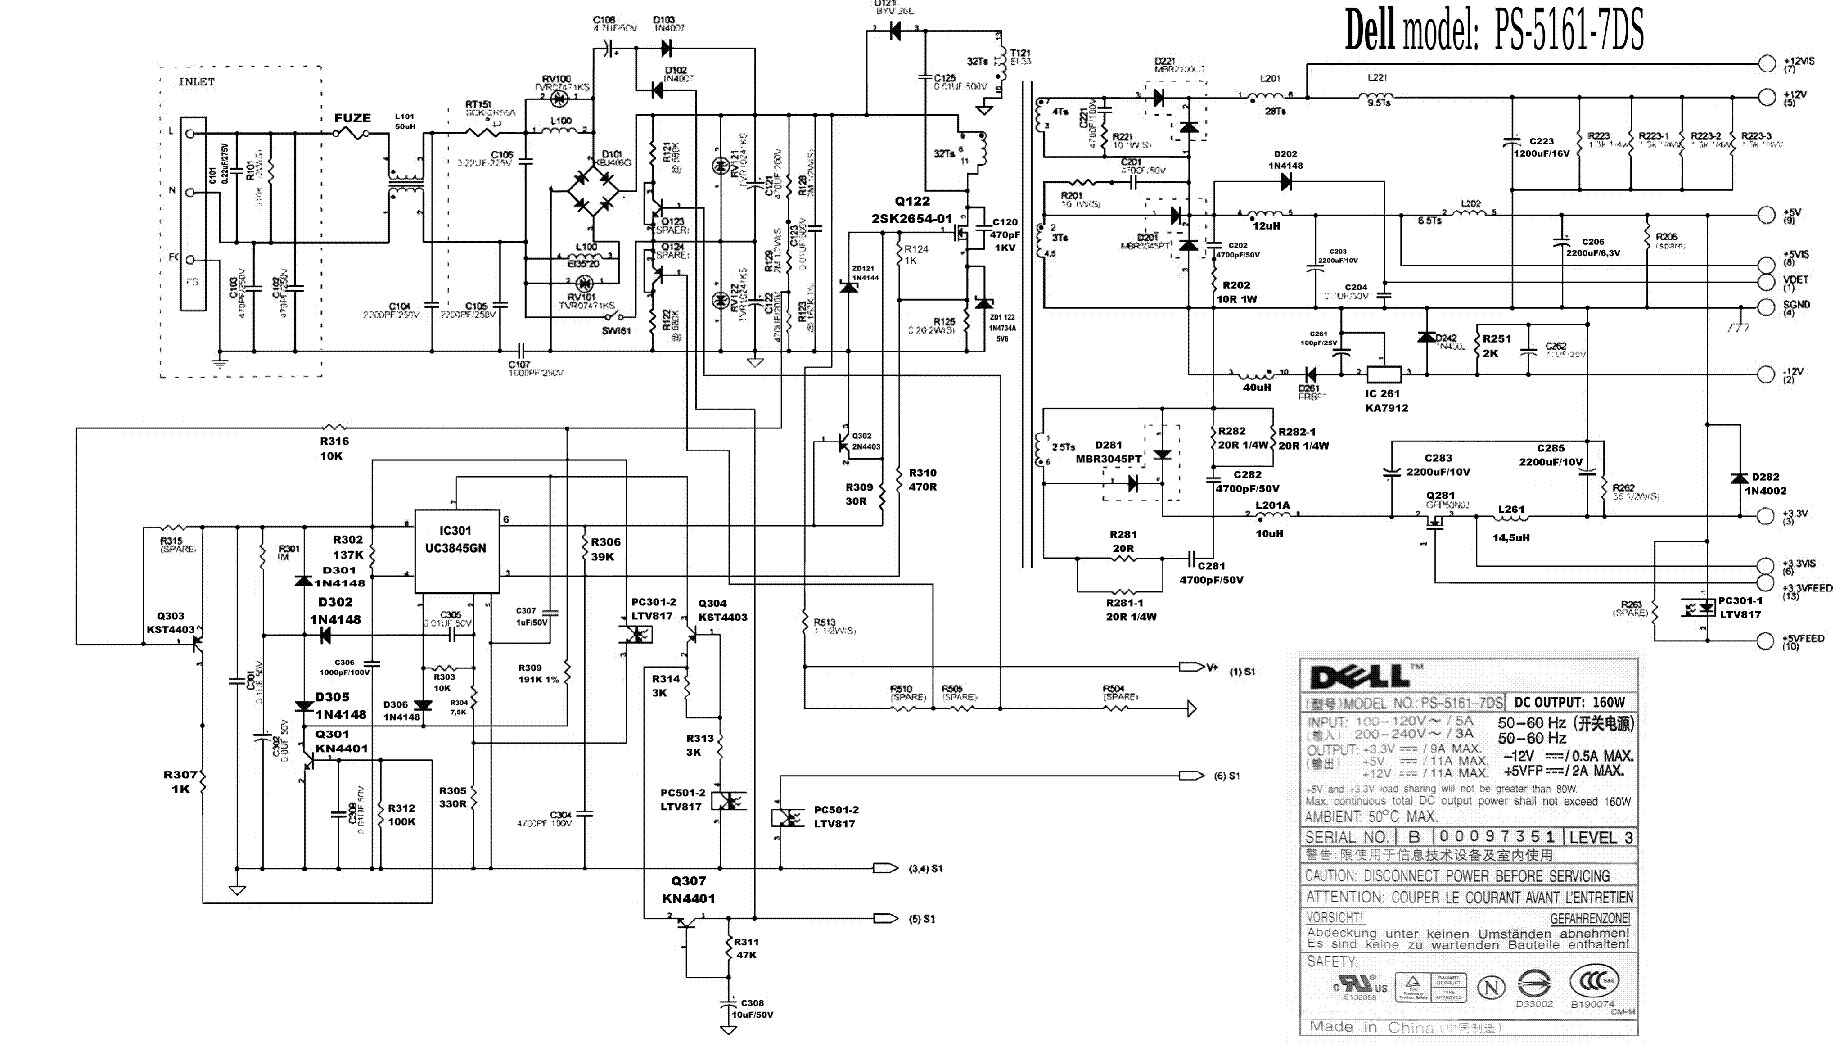 dell wiring diagram dell studio wiring diagram wiring diagram data dell mms 5650 wiring diagram dell studio wiring diagram wiring